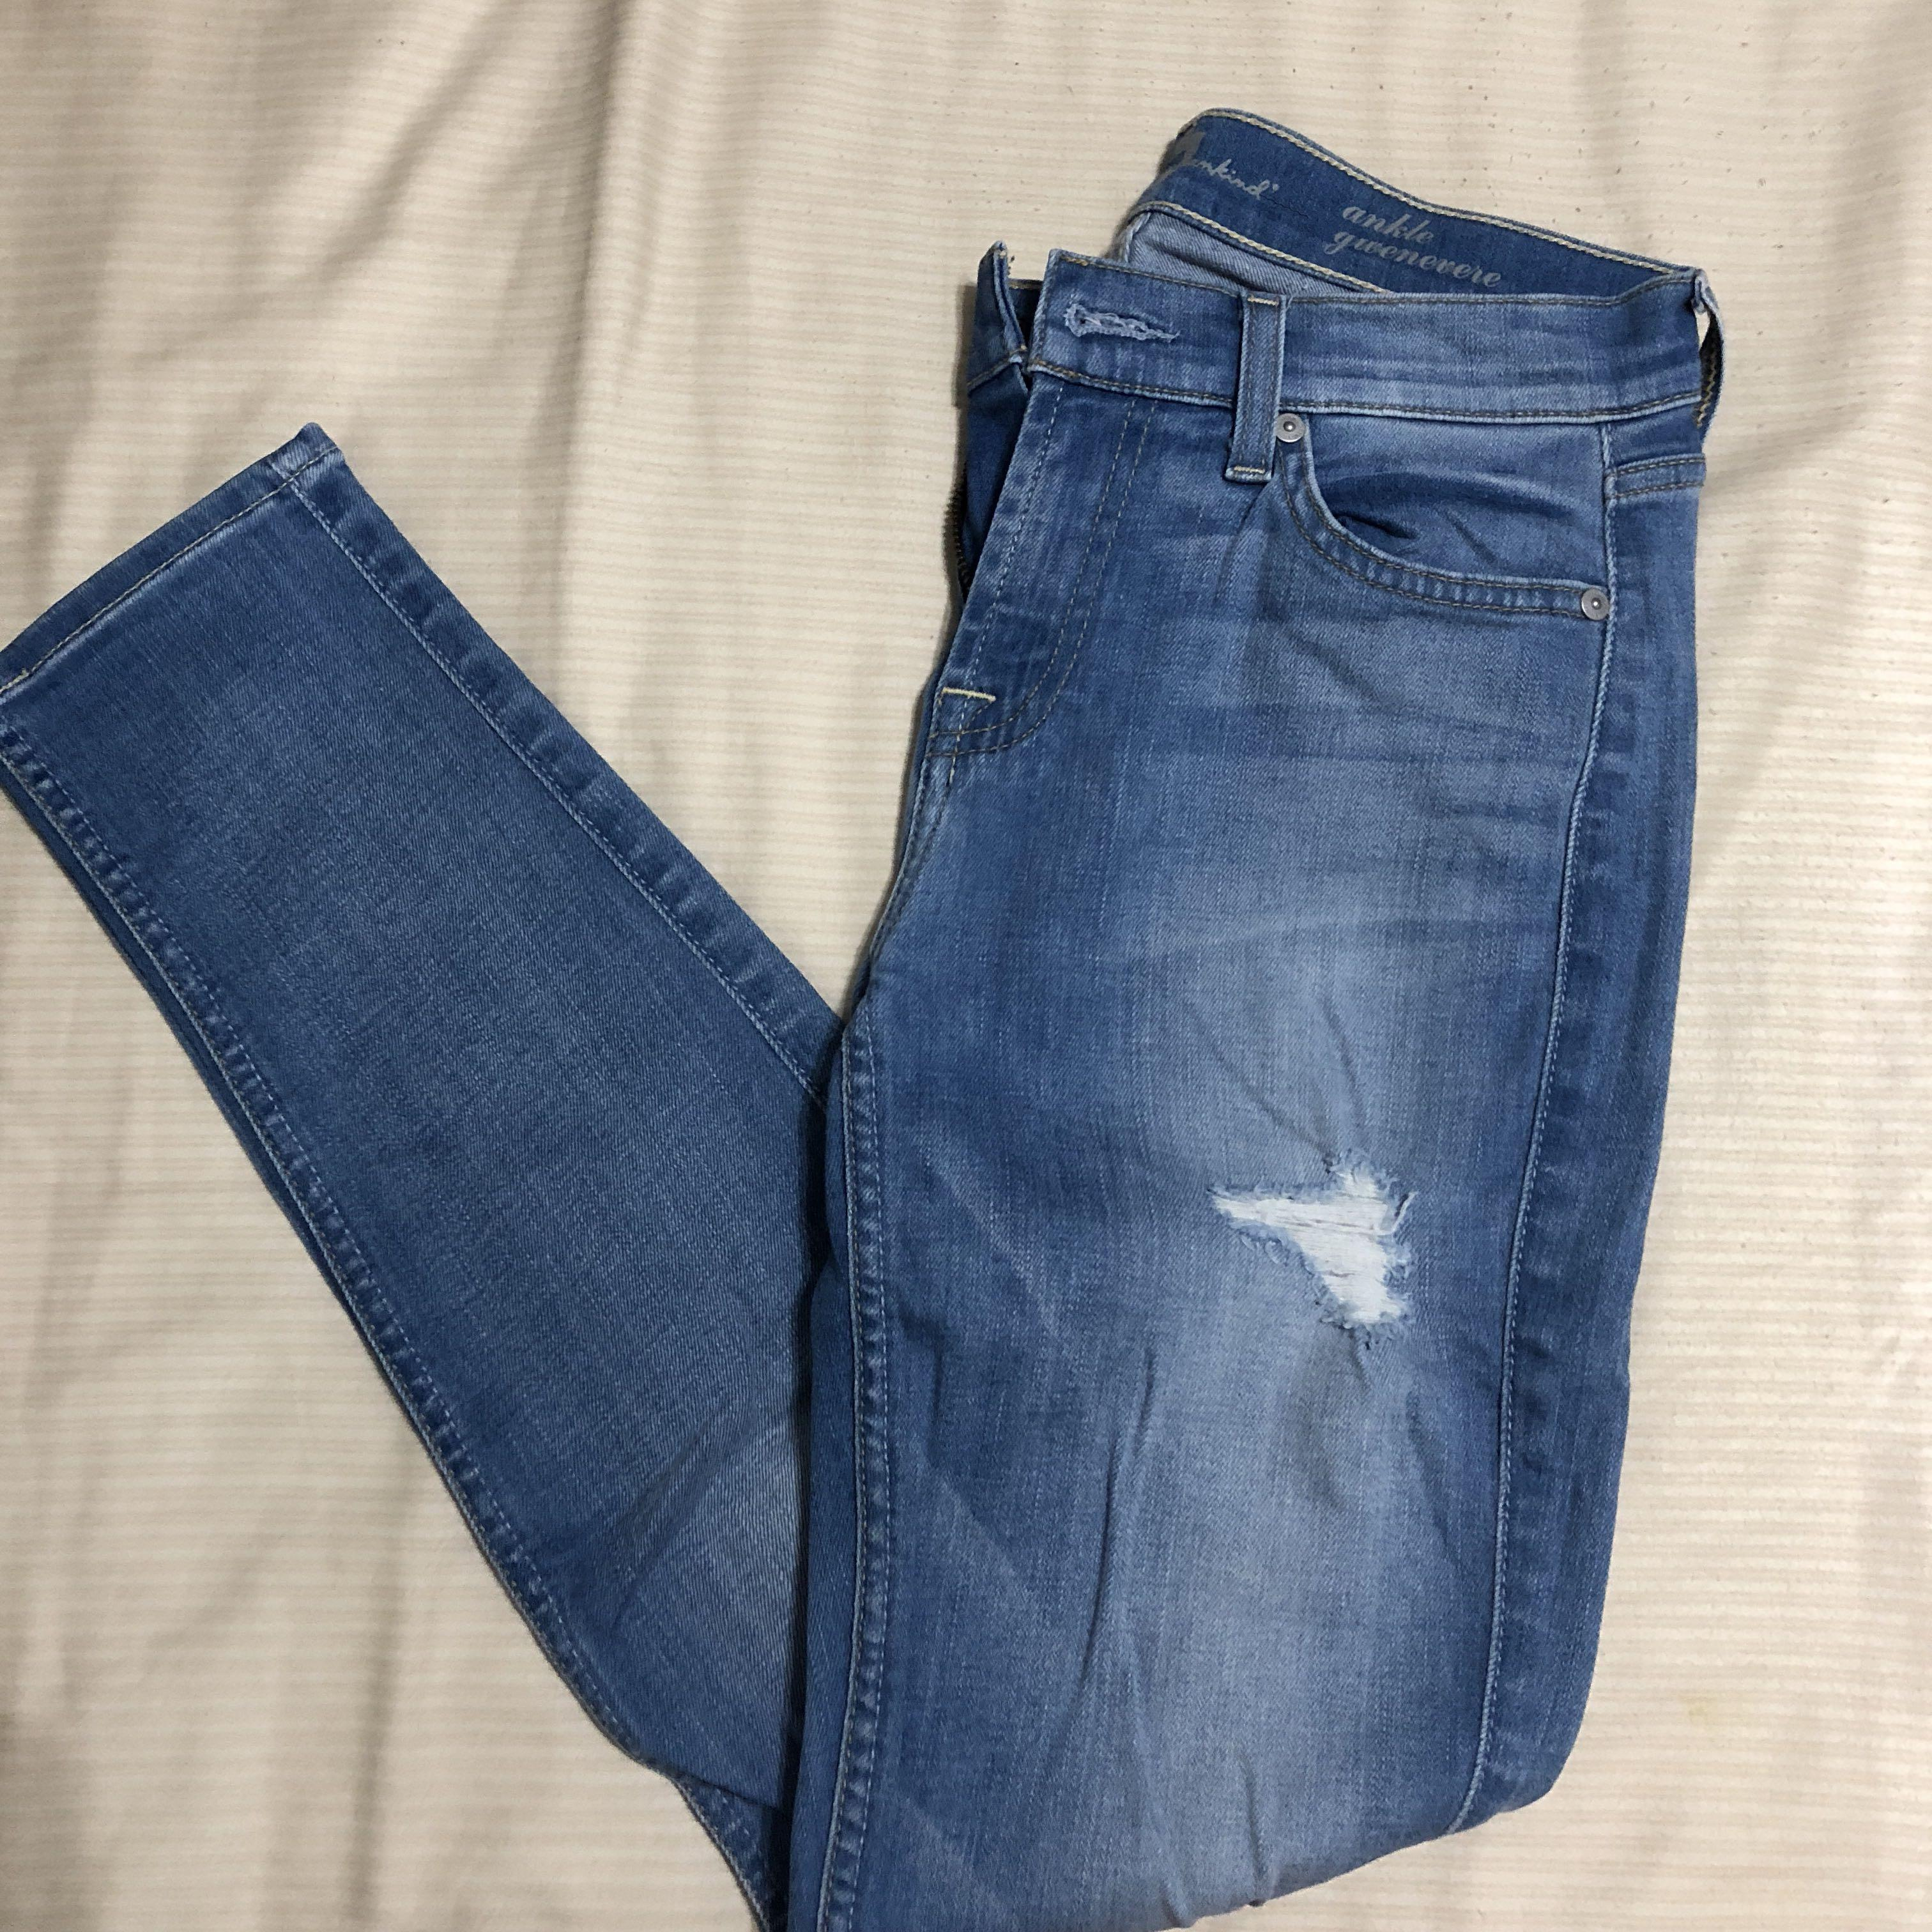 Seven for all mankind distressed skinny jeans size 7